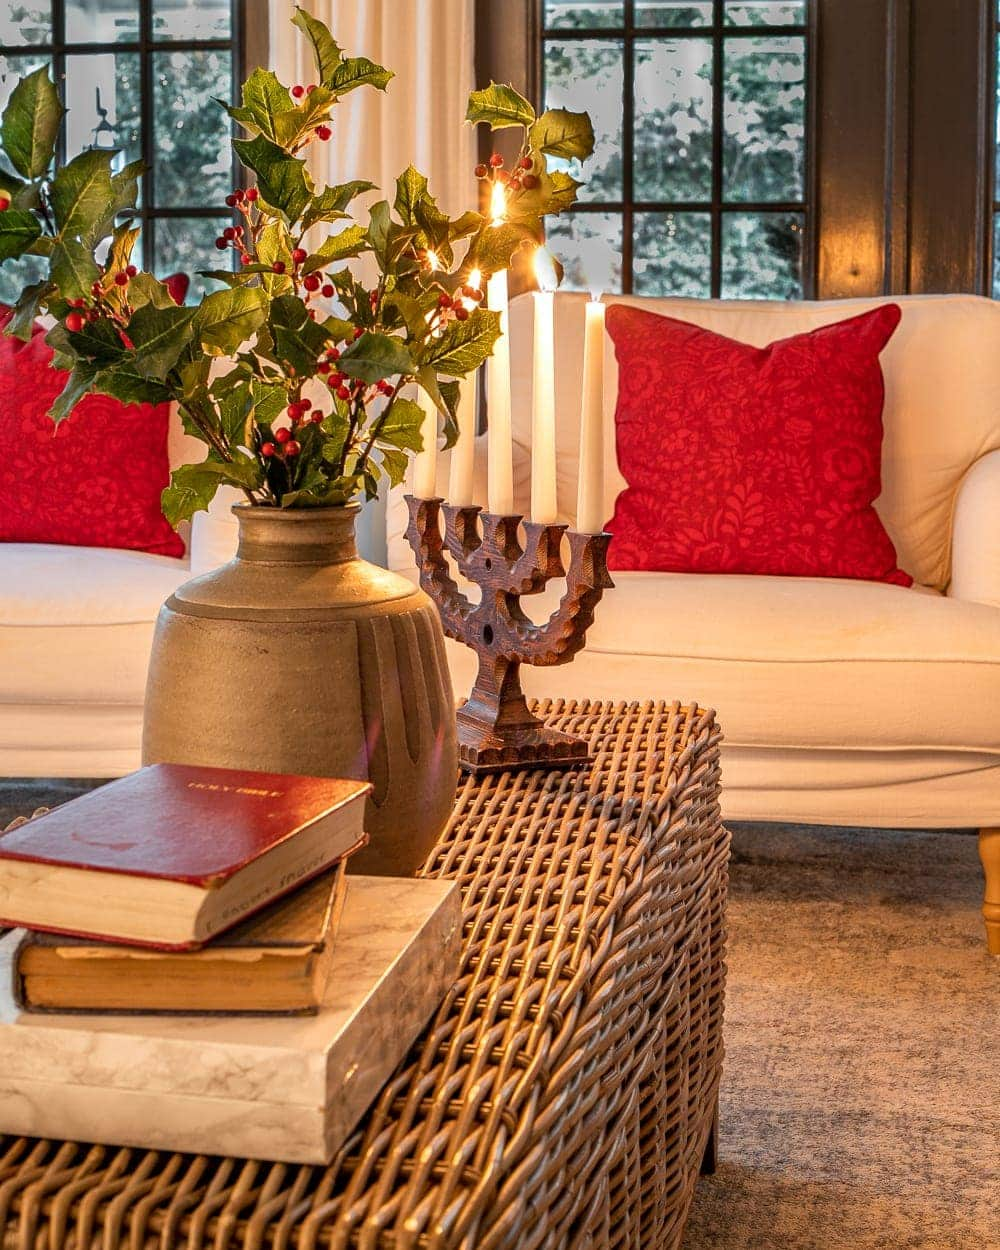 Christmas candlelight coffee table vignette living room